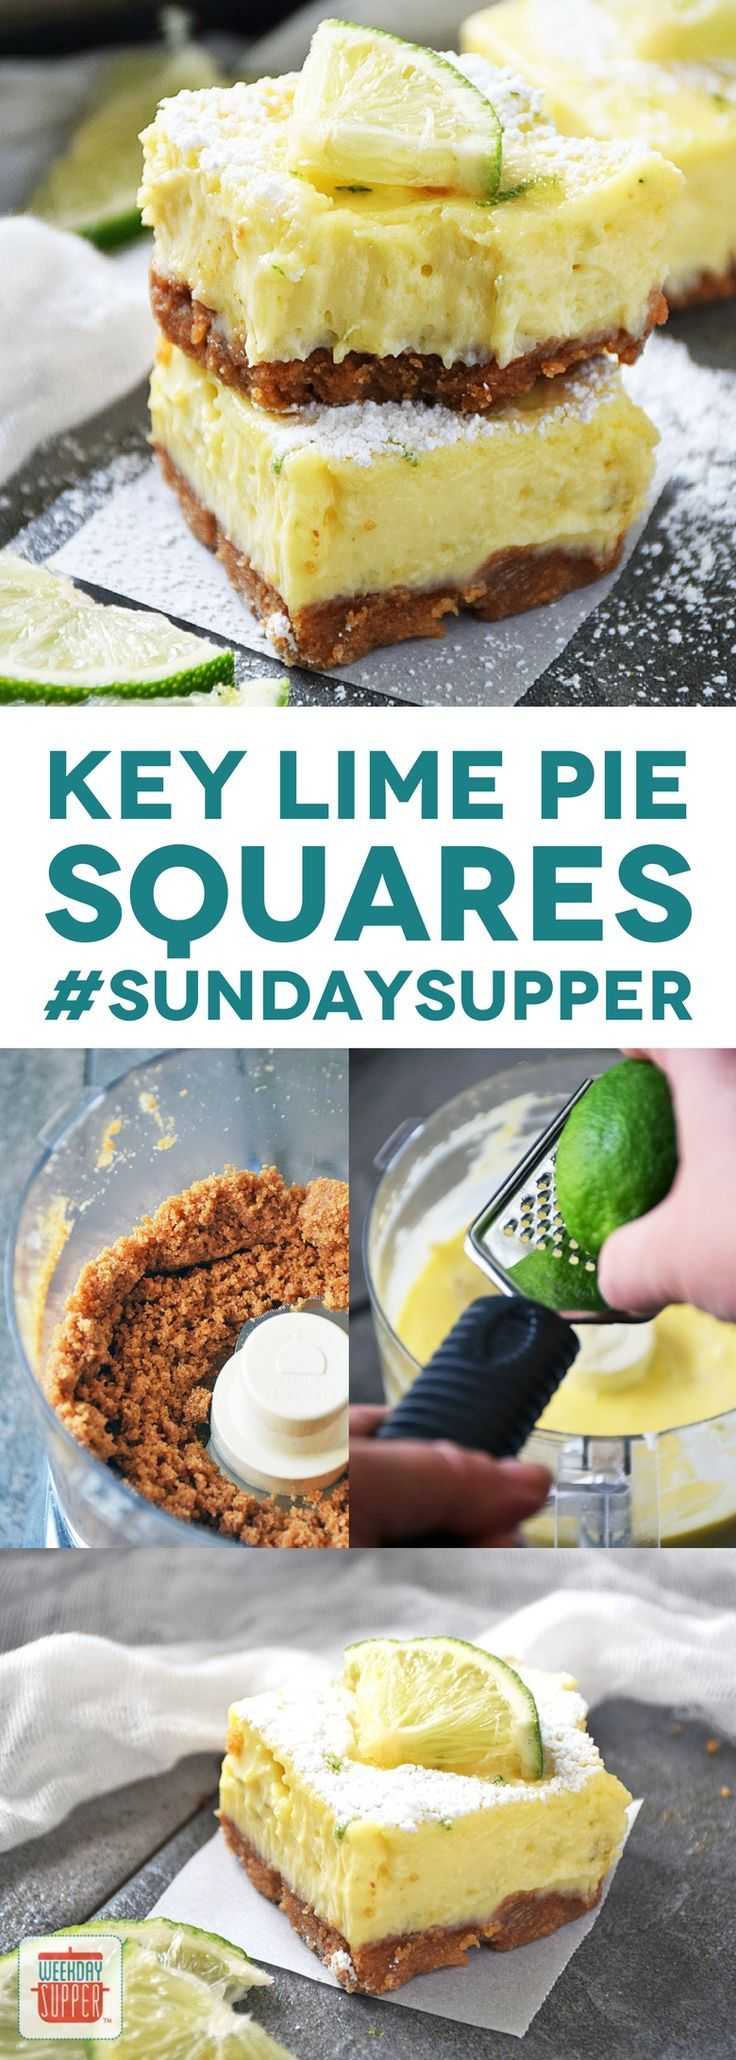 Get ready to pucker up and enjoy these deliciously easy Key Lime Pie Squares! This dessert is easy enough to make any day & impressive for guests!